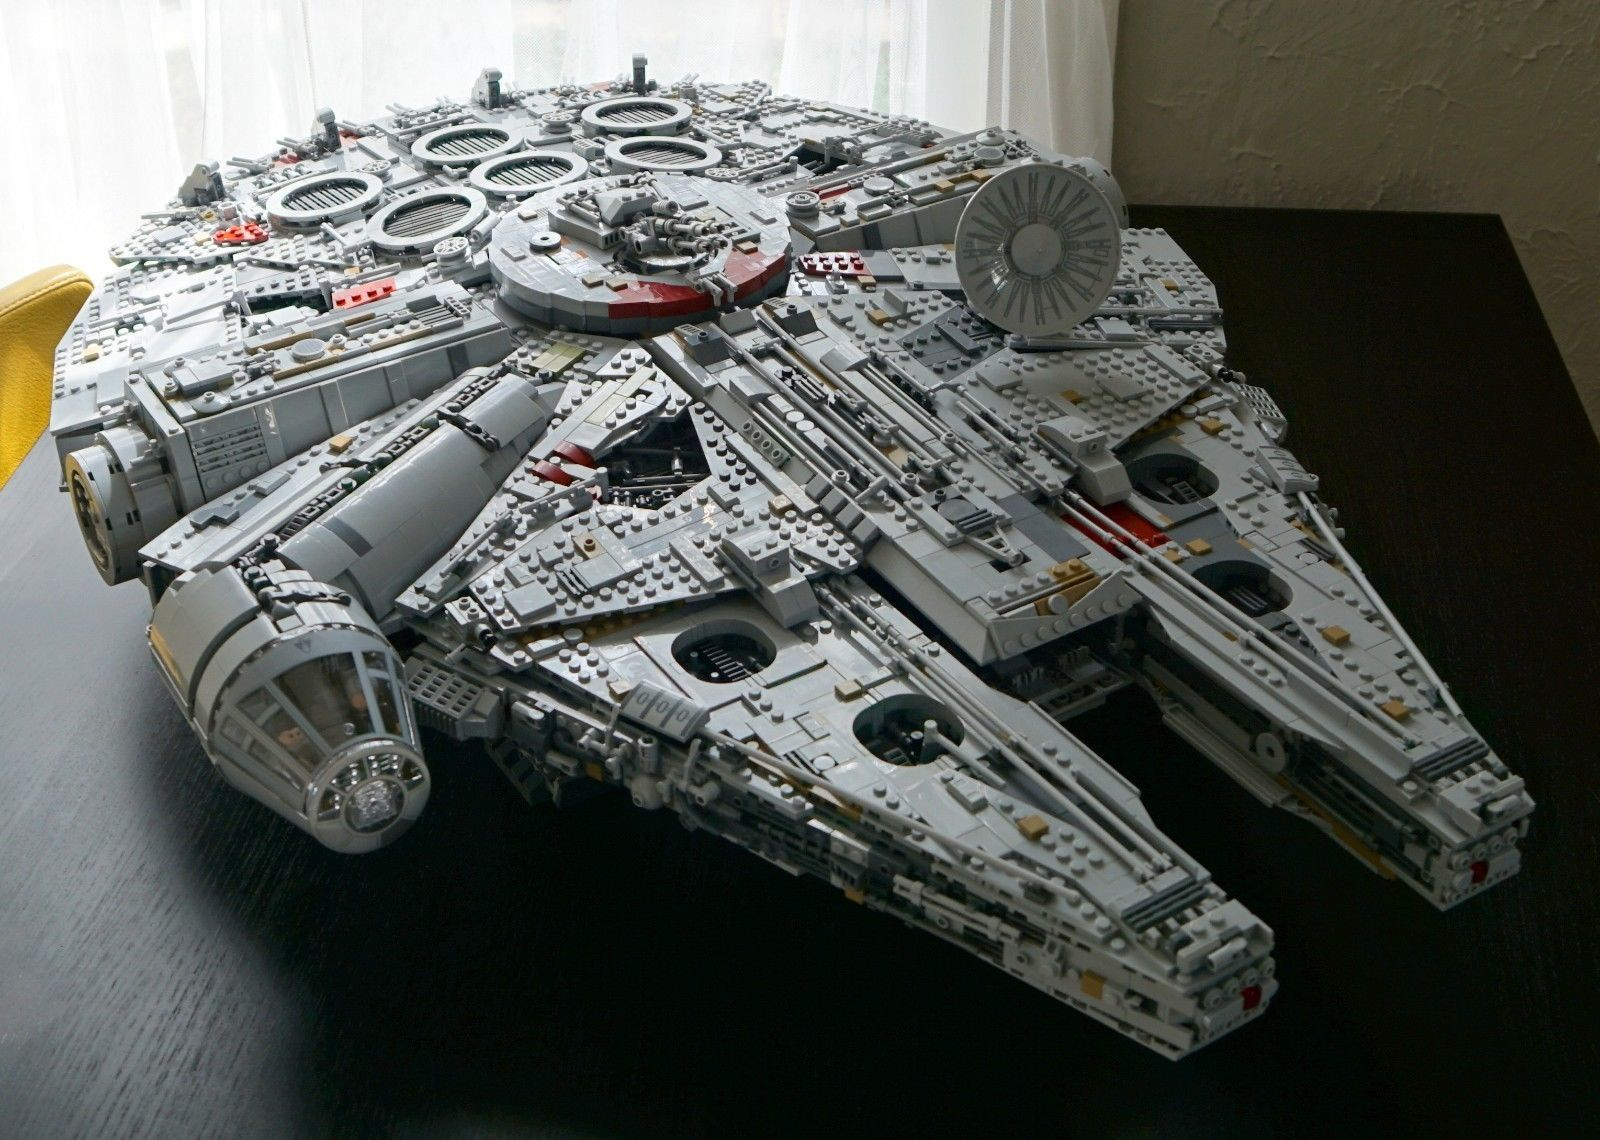 Lego 75192 Star Wars Millennium Falcon Ultimate Collector Series One Week Old Star Wars Spaceships Millennium Falcon Lego Lego Star Wars